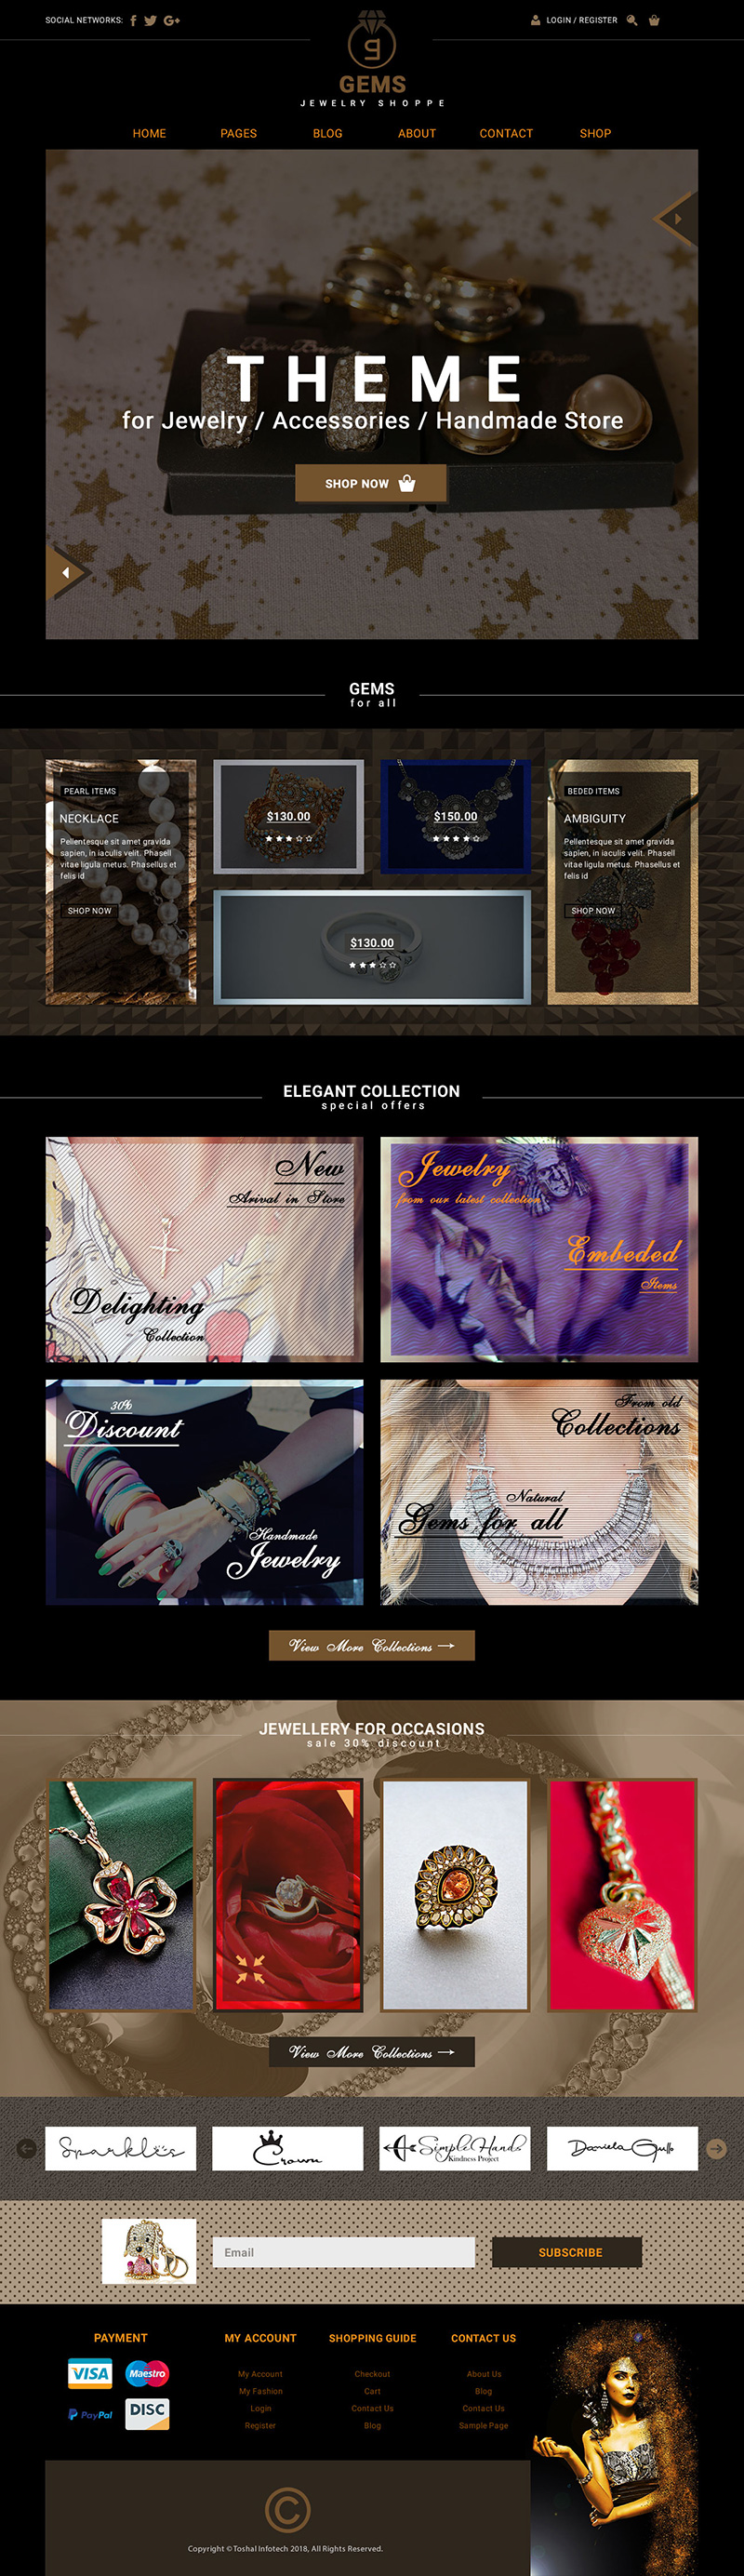 Gems Jewelry Shoppe Theme